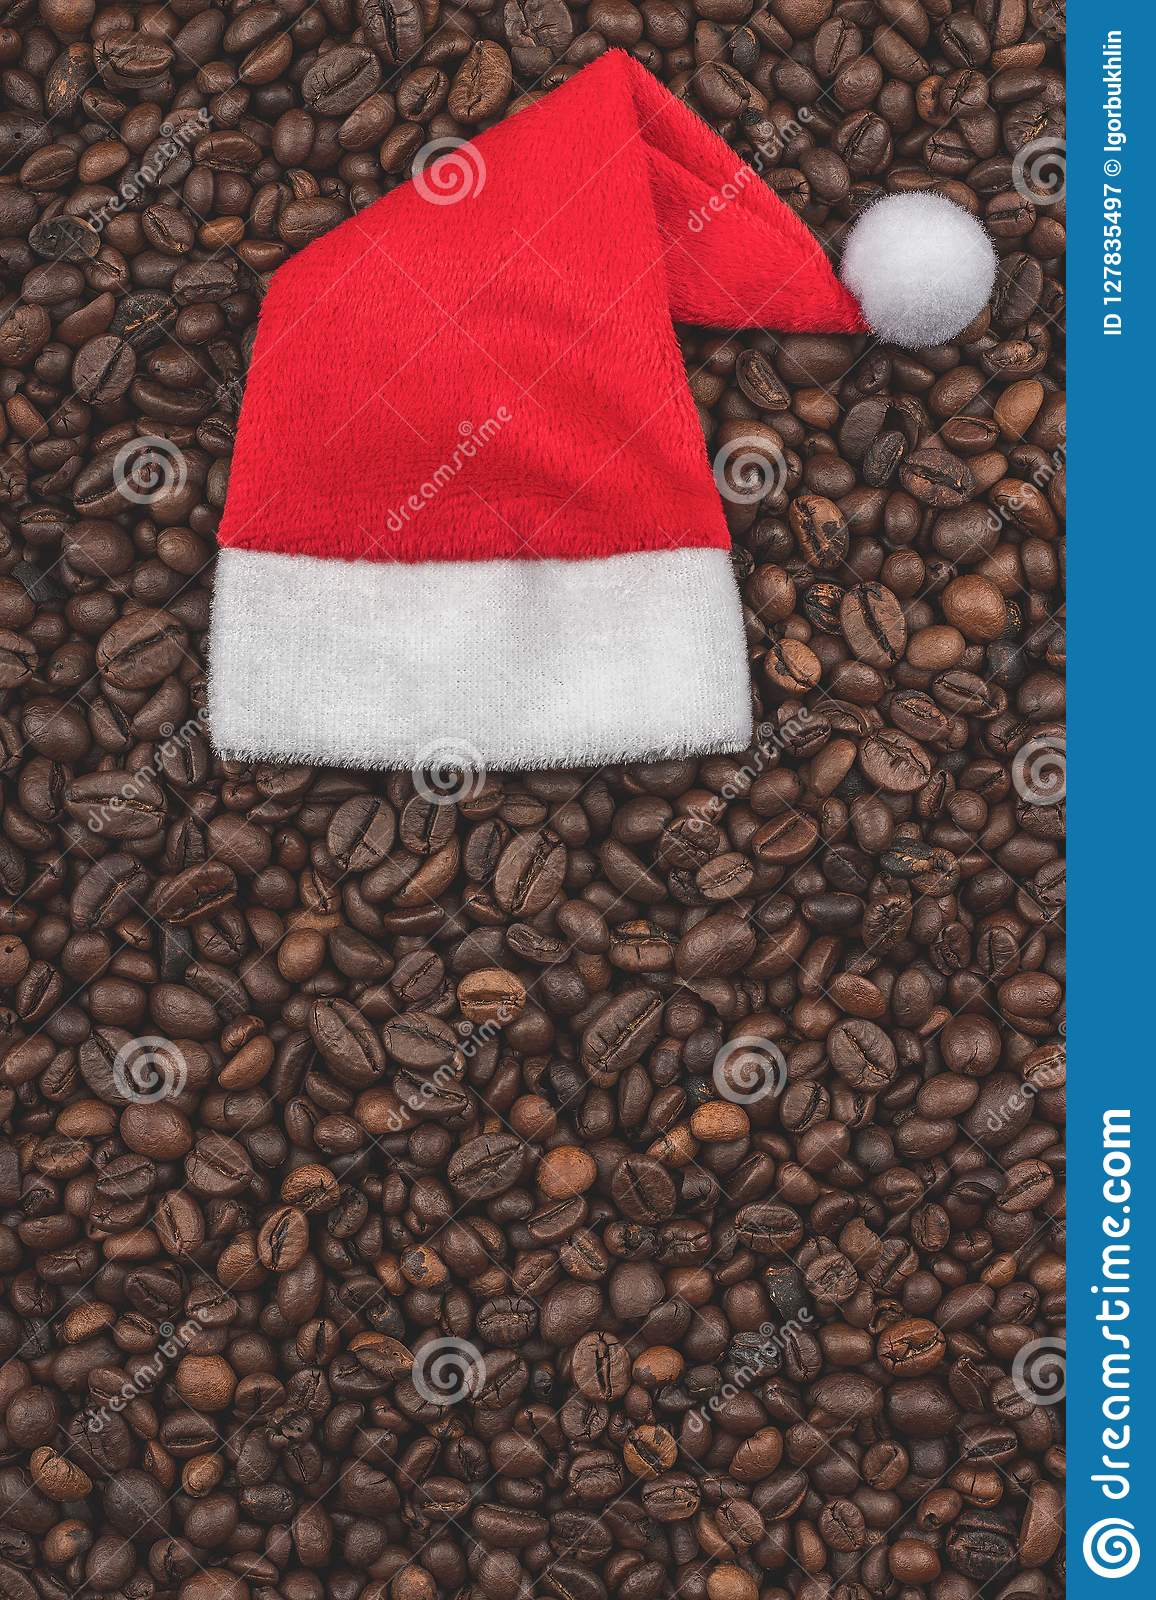 roasted coffee beans background close up view happy new year and christmas